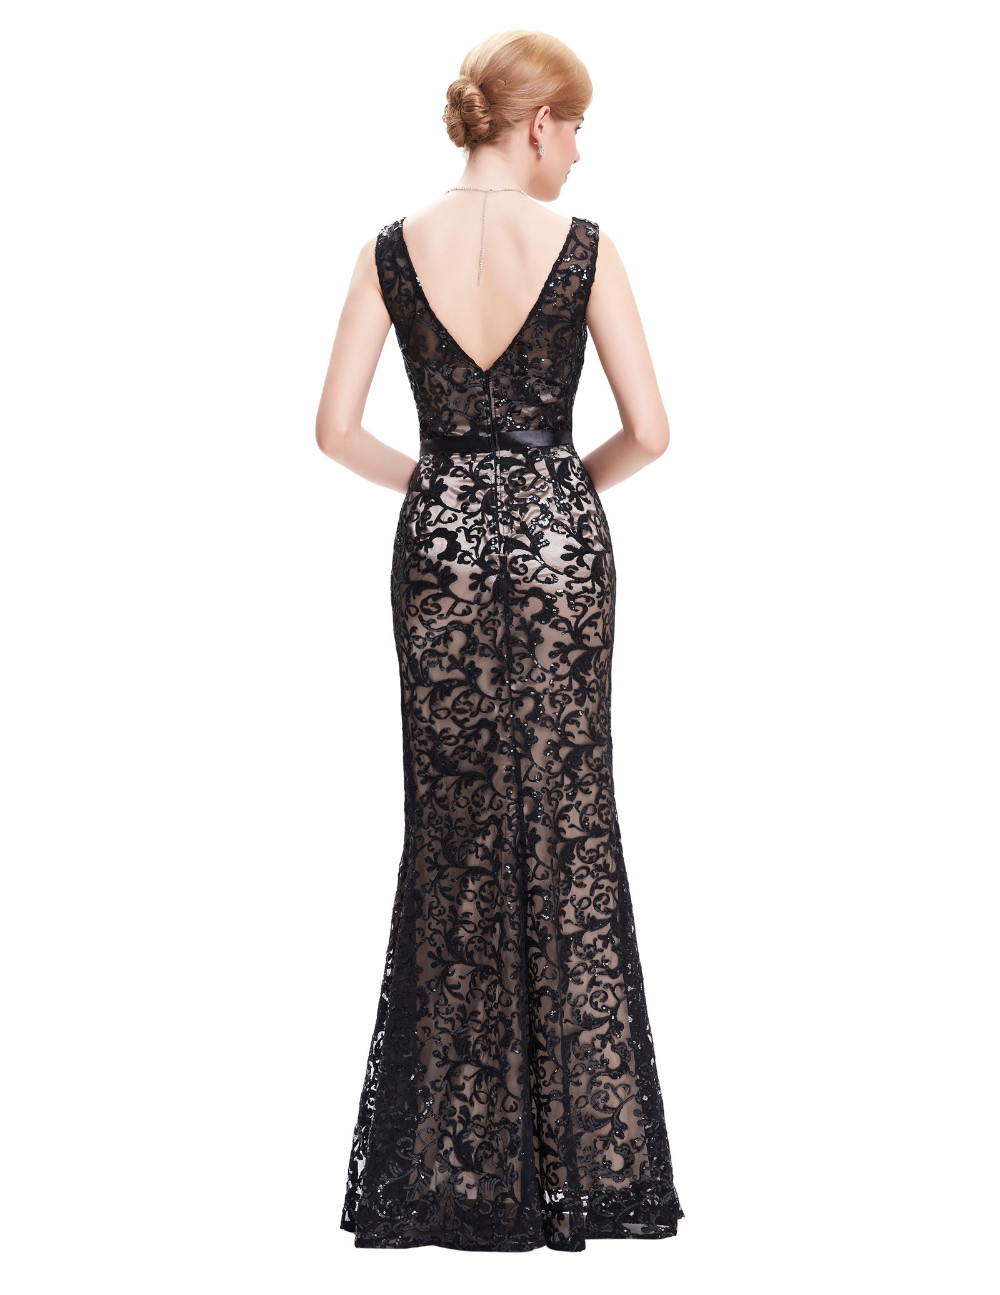 Long Evening Dress Kate Kasin Double V Neck Beaded Evening Gowns Lace Mother of the Bride Dresses Black Formal Prom Dress 0034 10